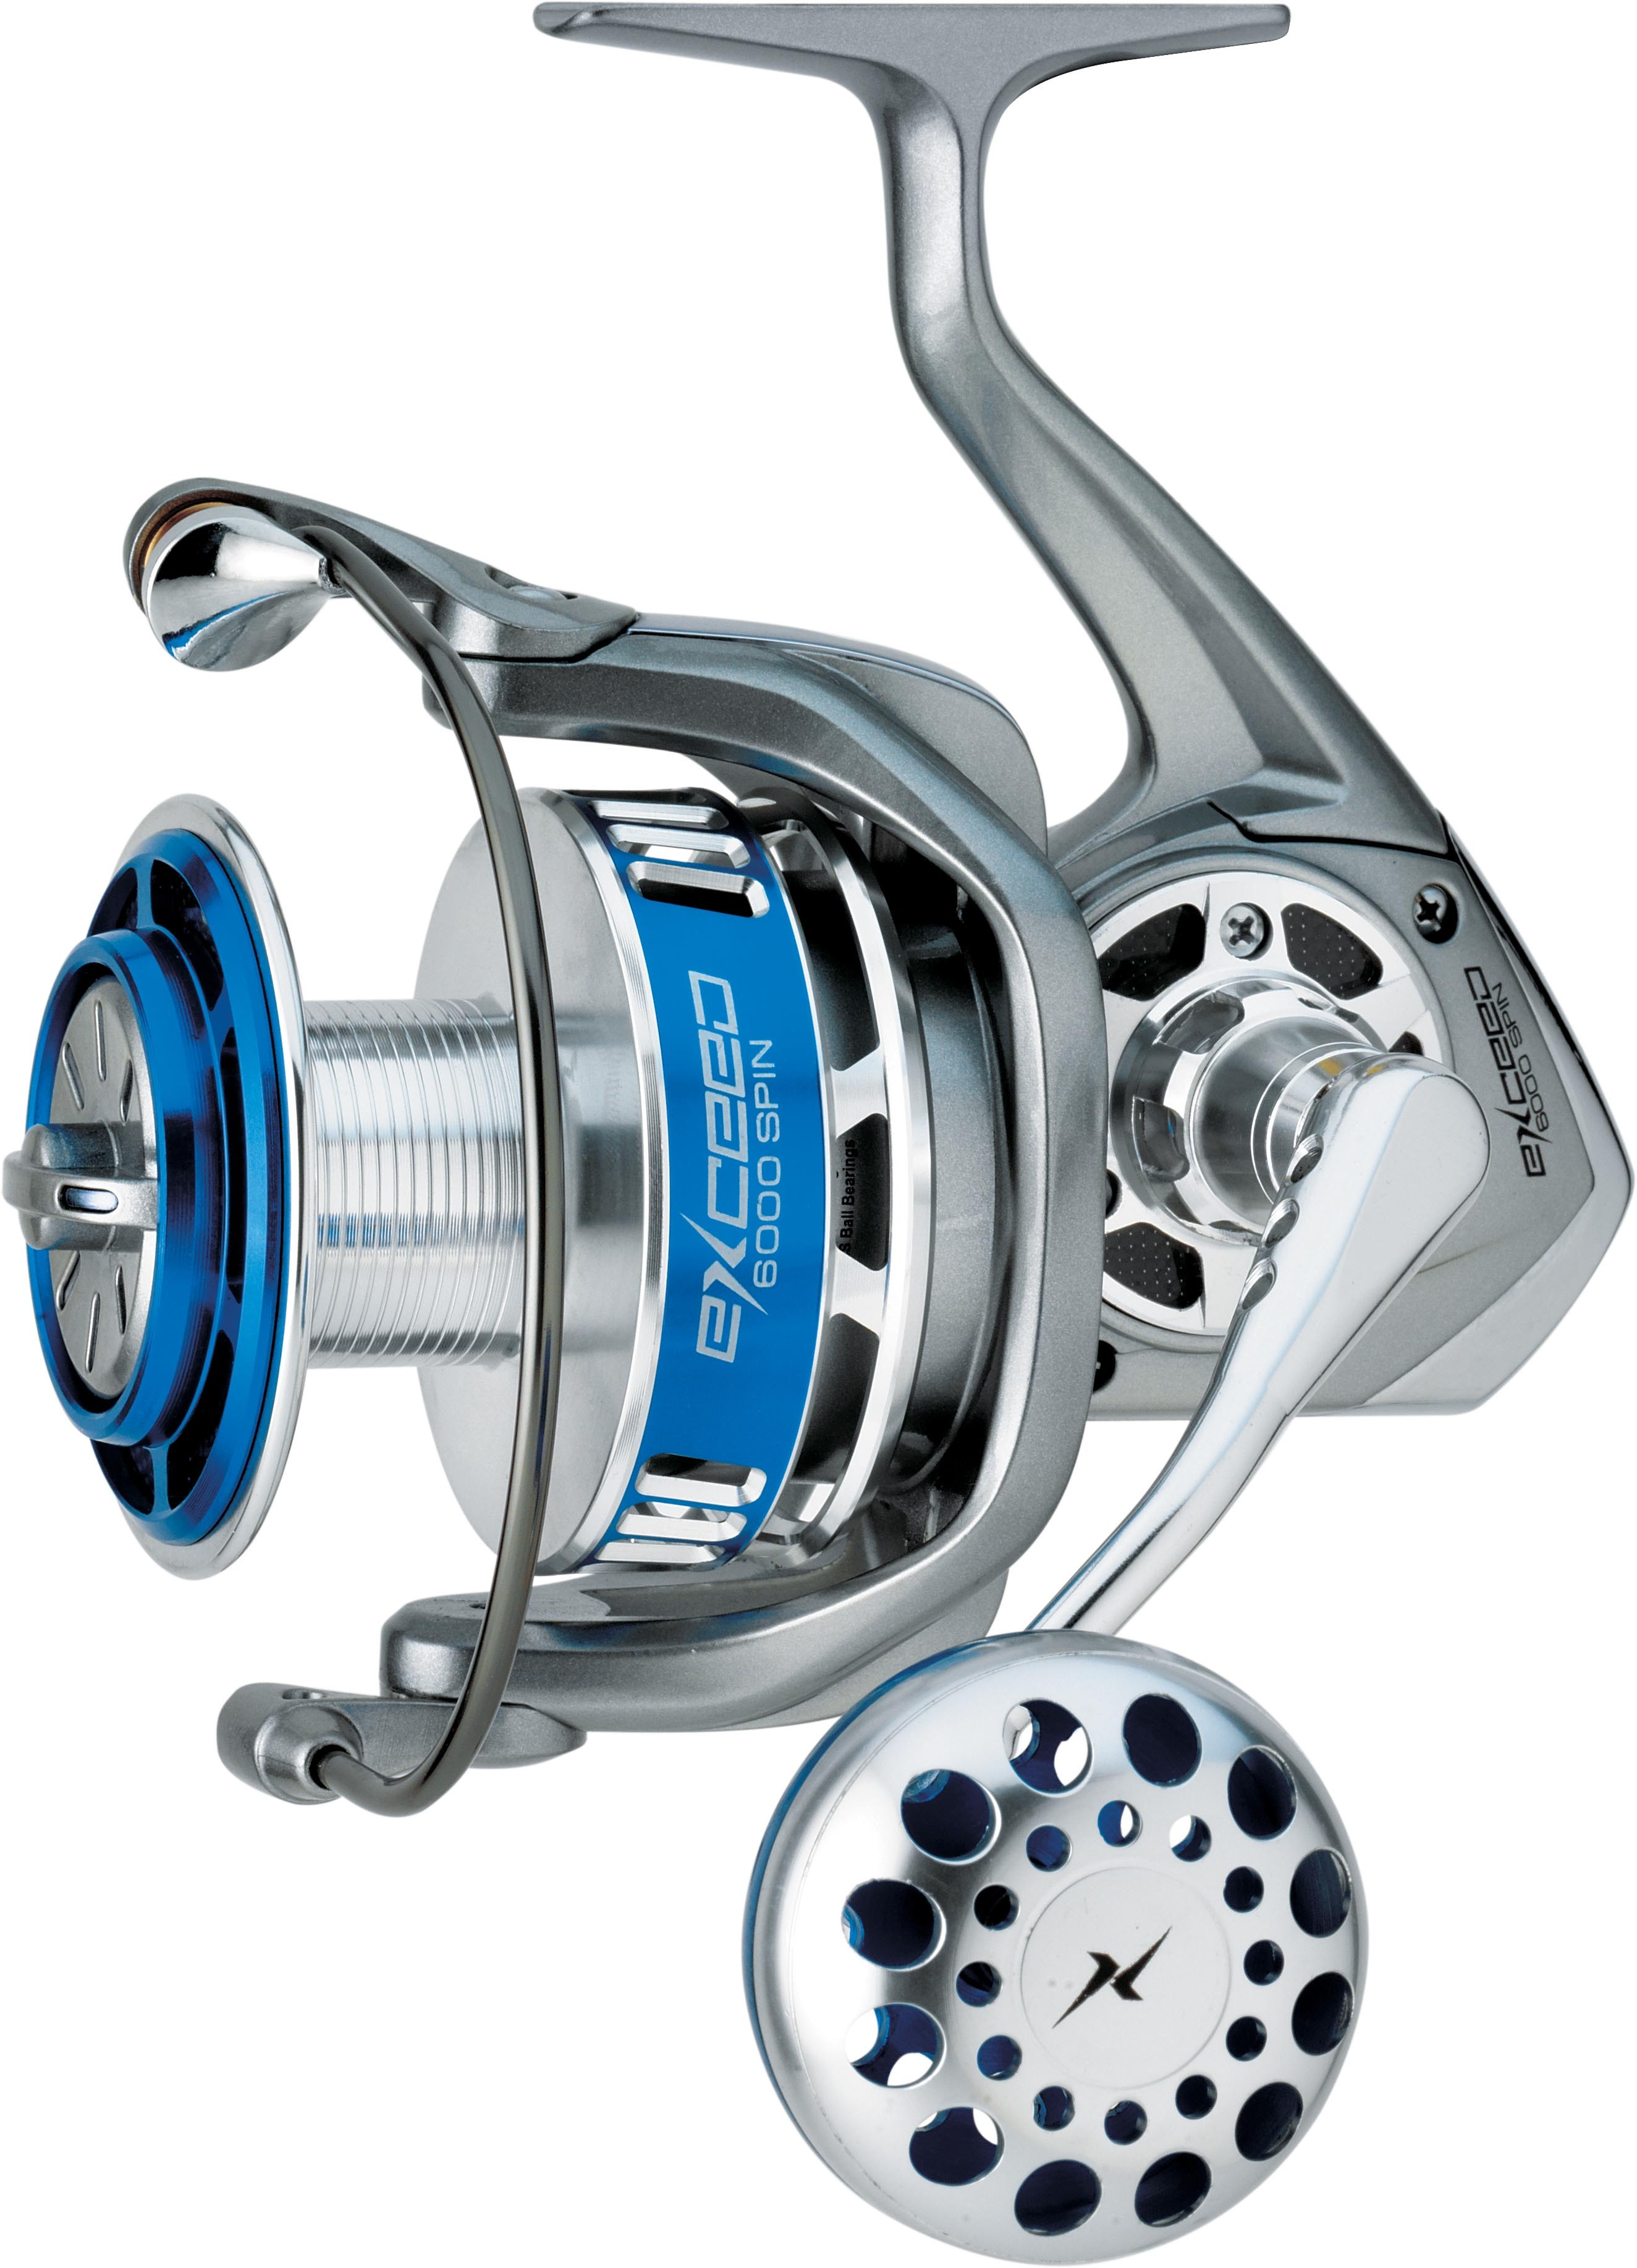 Exceed spin Heavy duty saltwater reels 00035